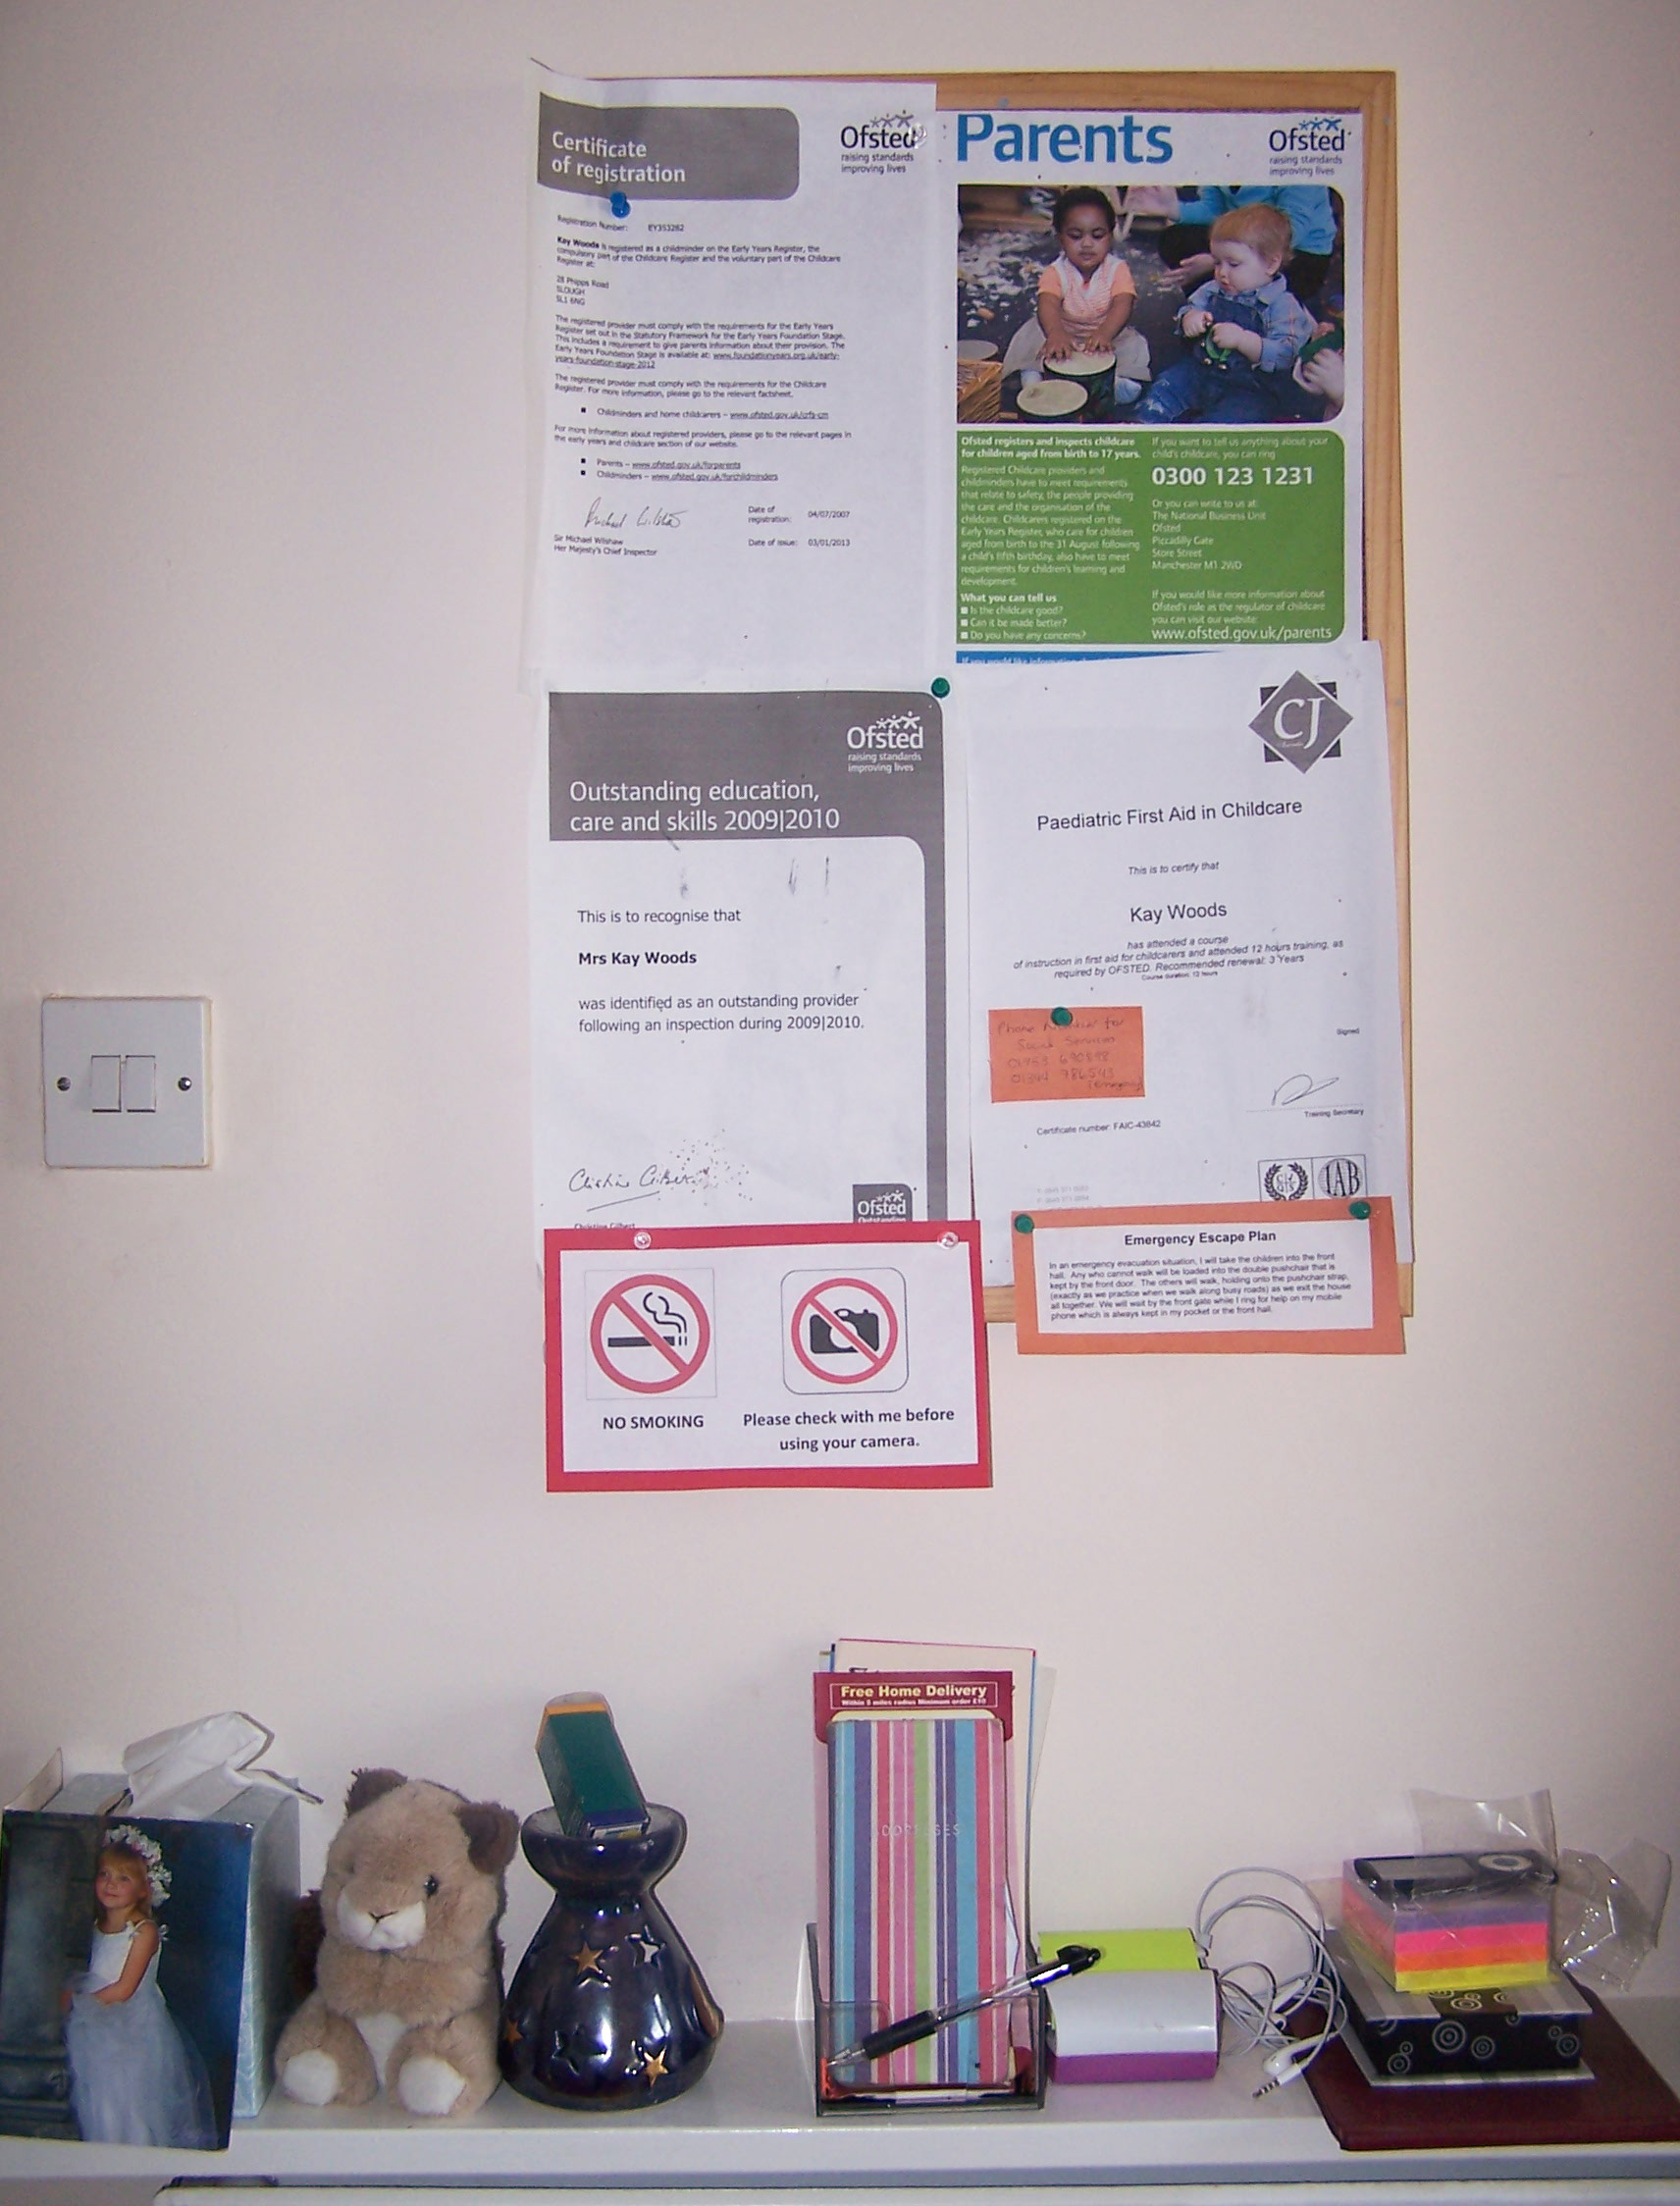 Childminding in small spaces « Childminding Best Practice